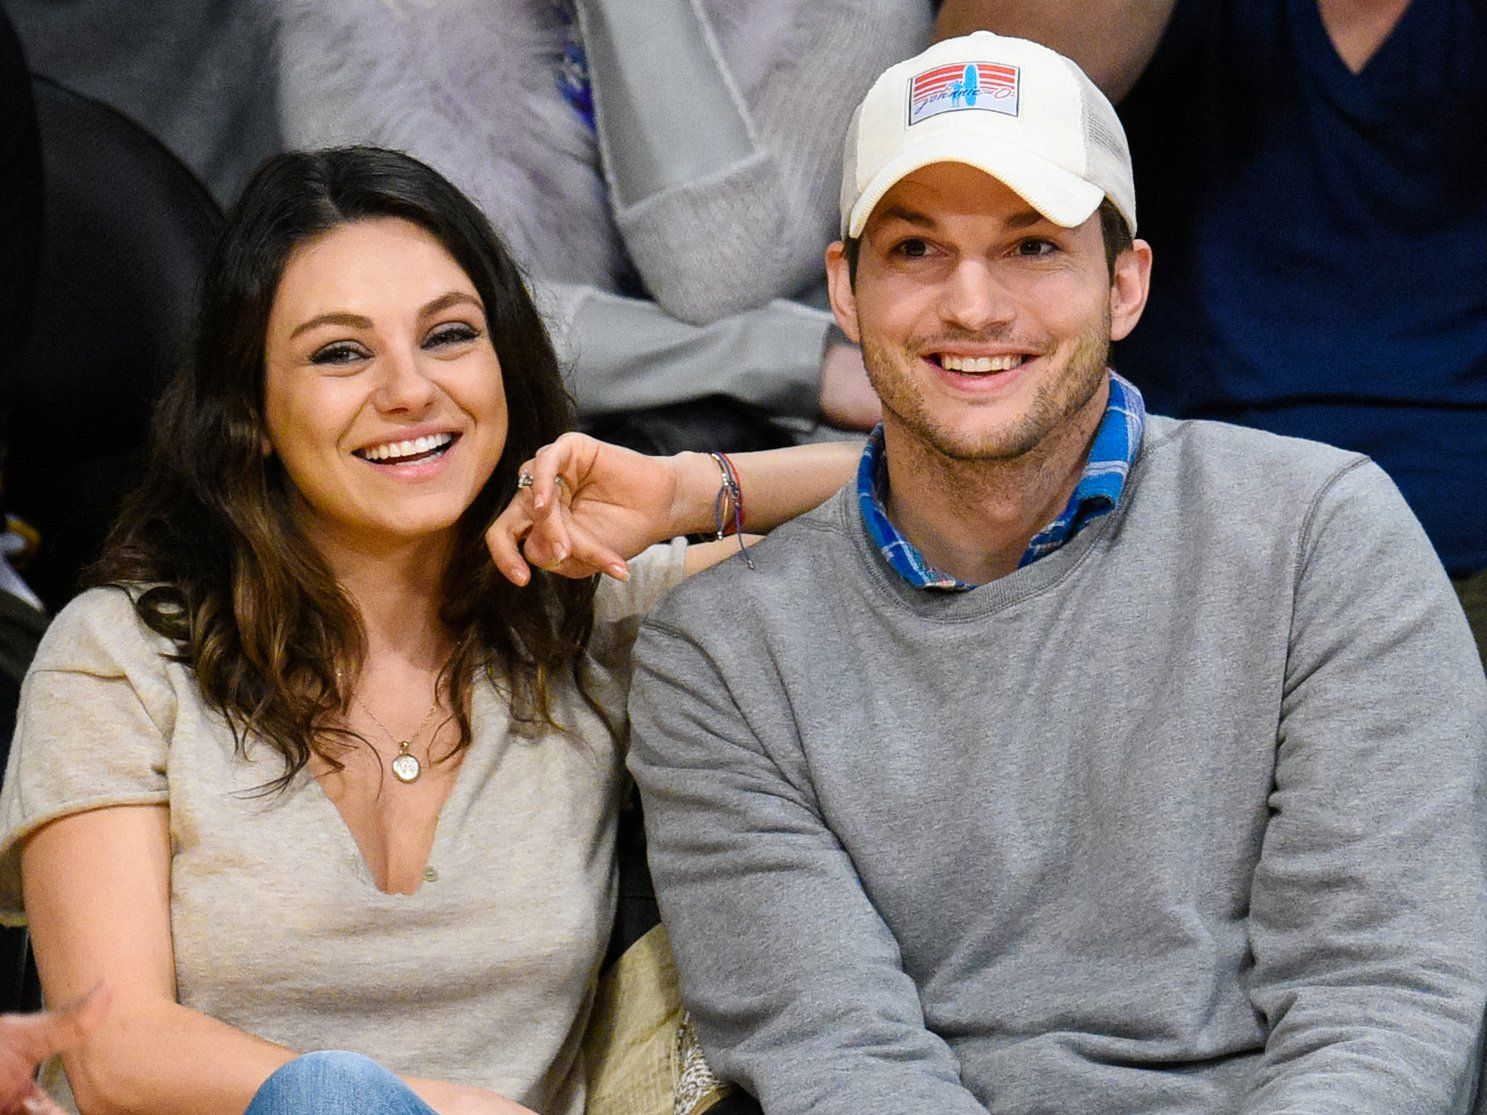 """mila-kunis-says-shed-like-to-join-the-cast-of-rhobh-but-what-does-her-hubby-ashton-kutcher-think-about-that"""